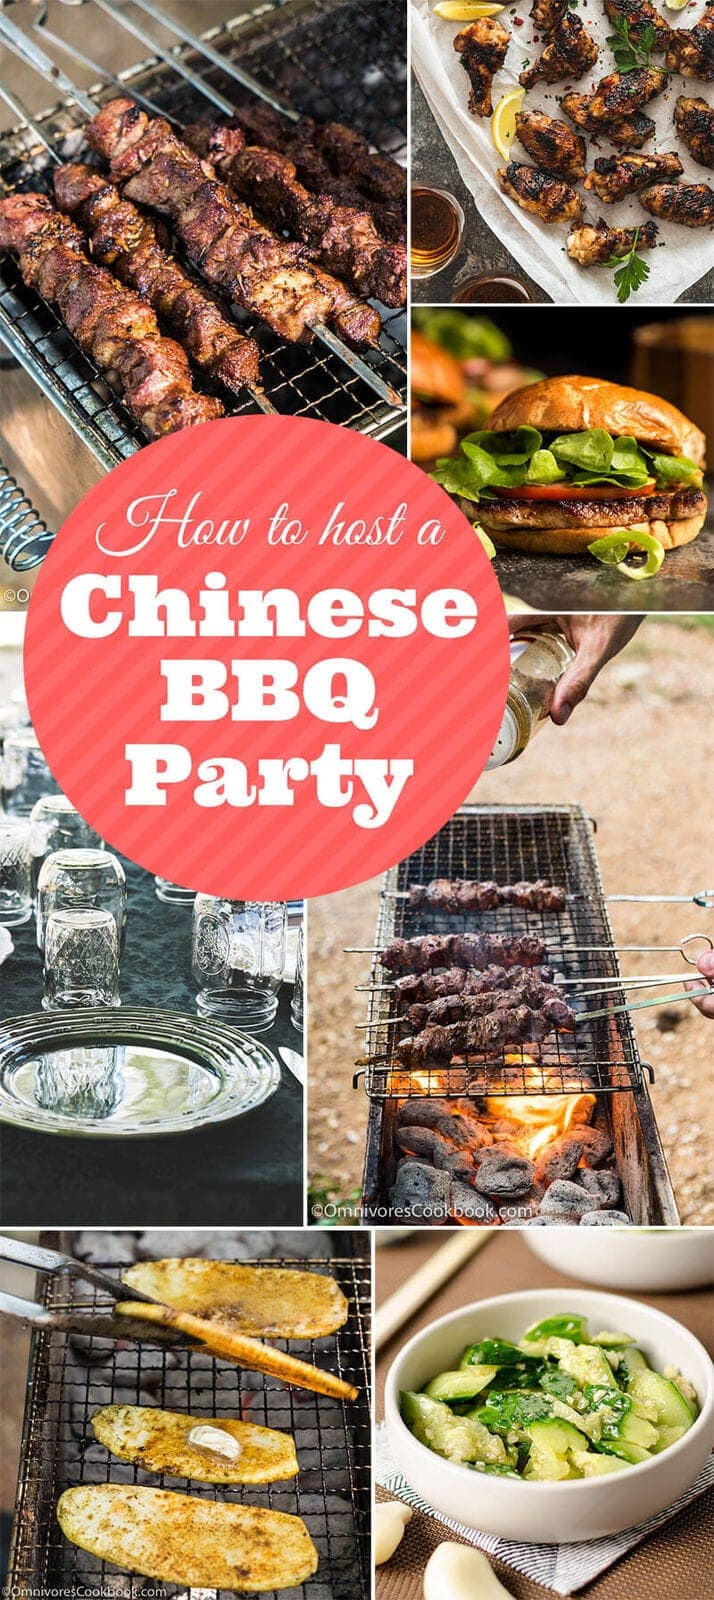 The Ultimate Guide To Hosting A Chinese Grilling And BBQ Party In Your Backyard With